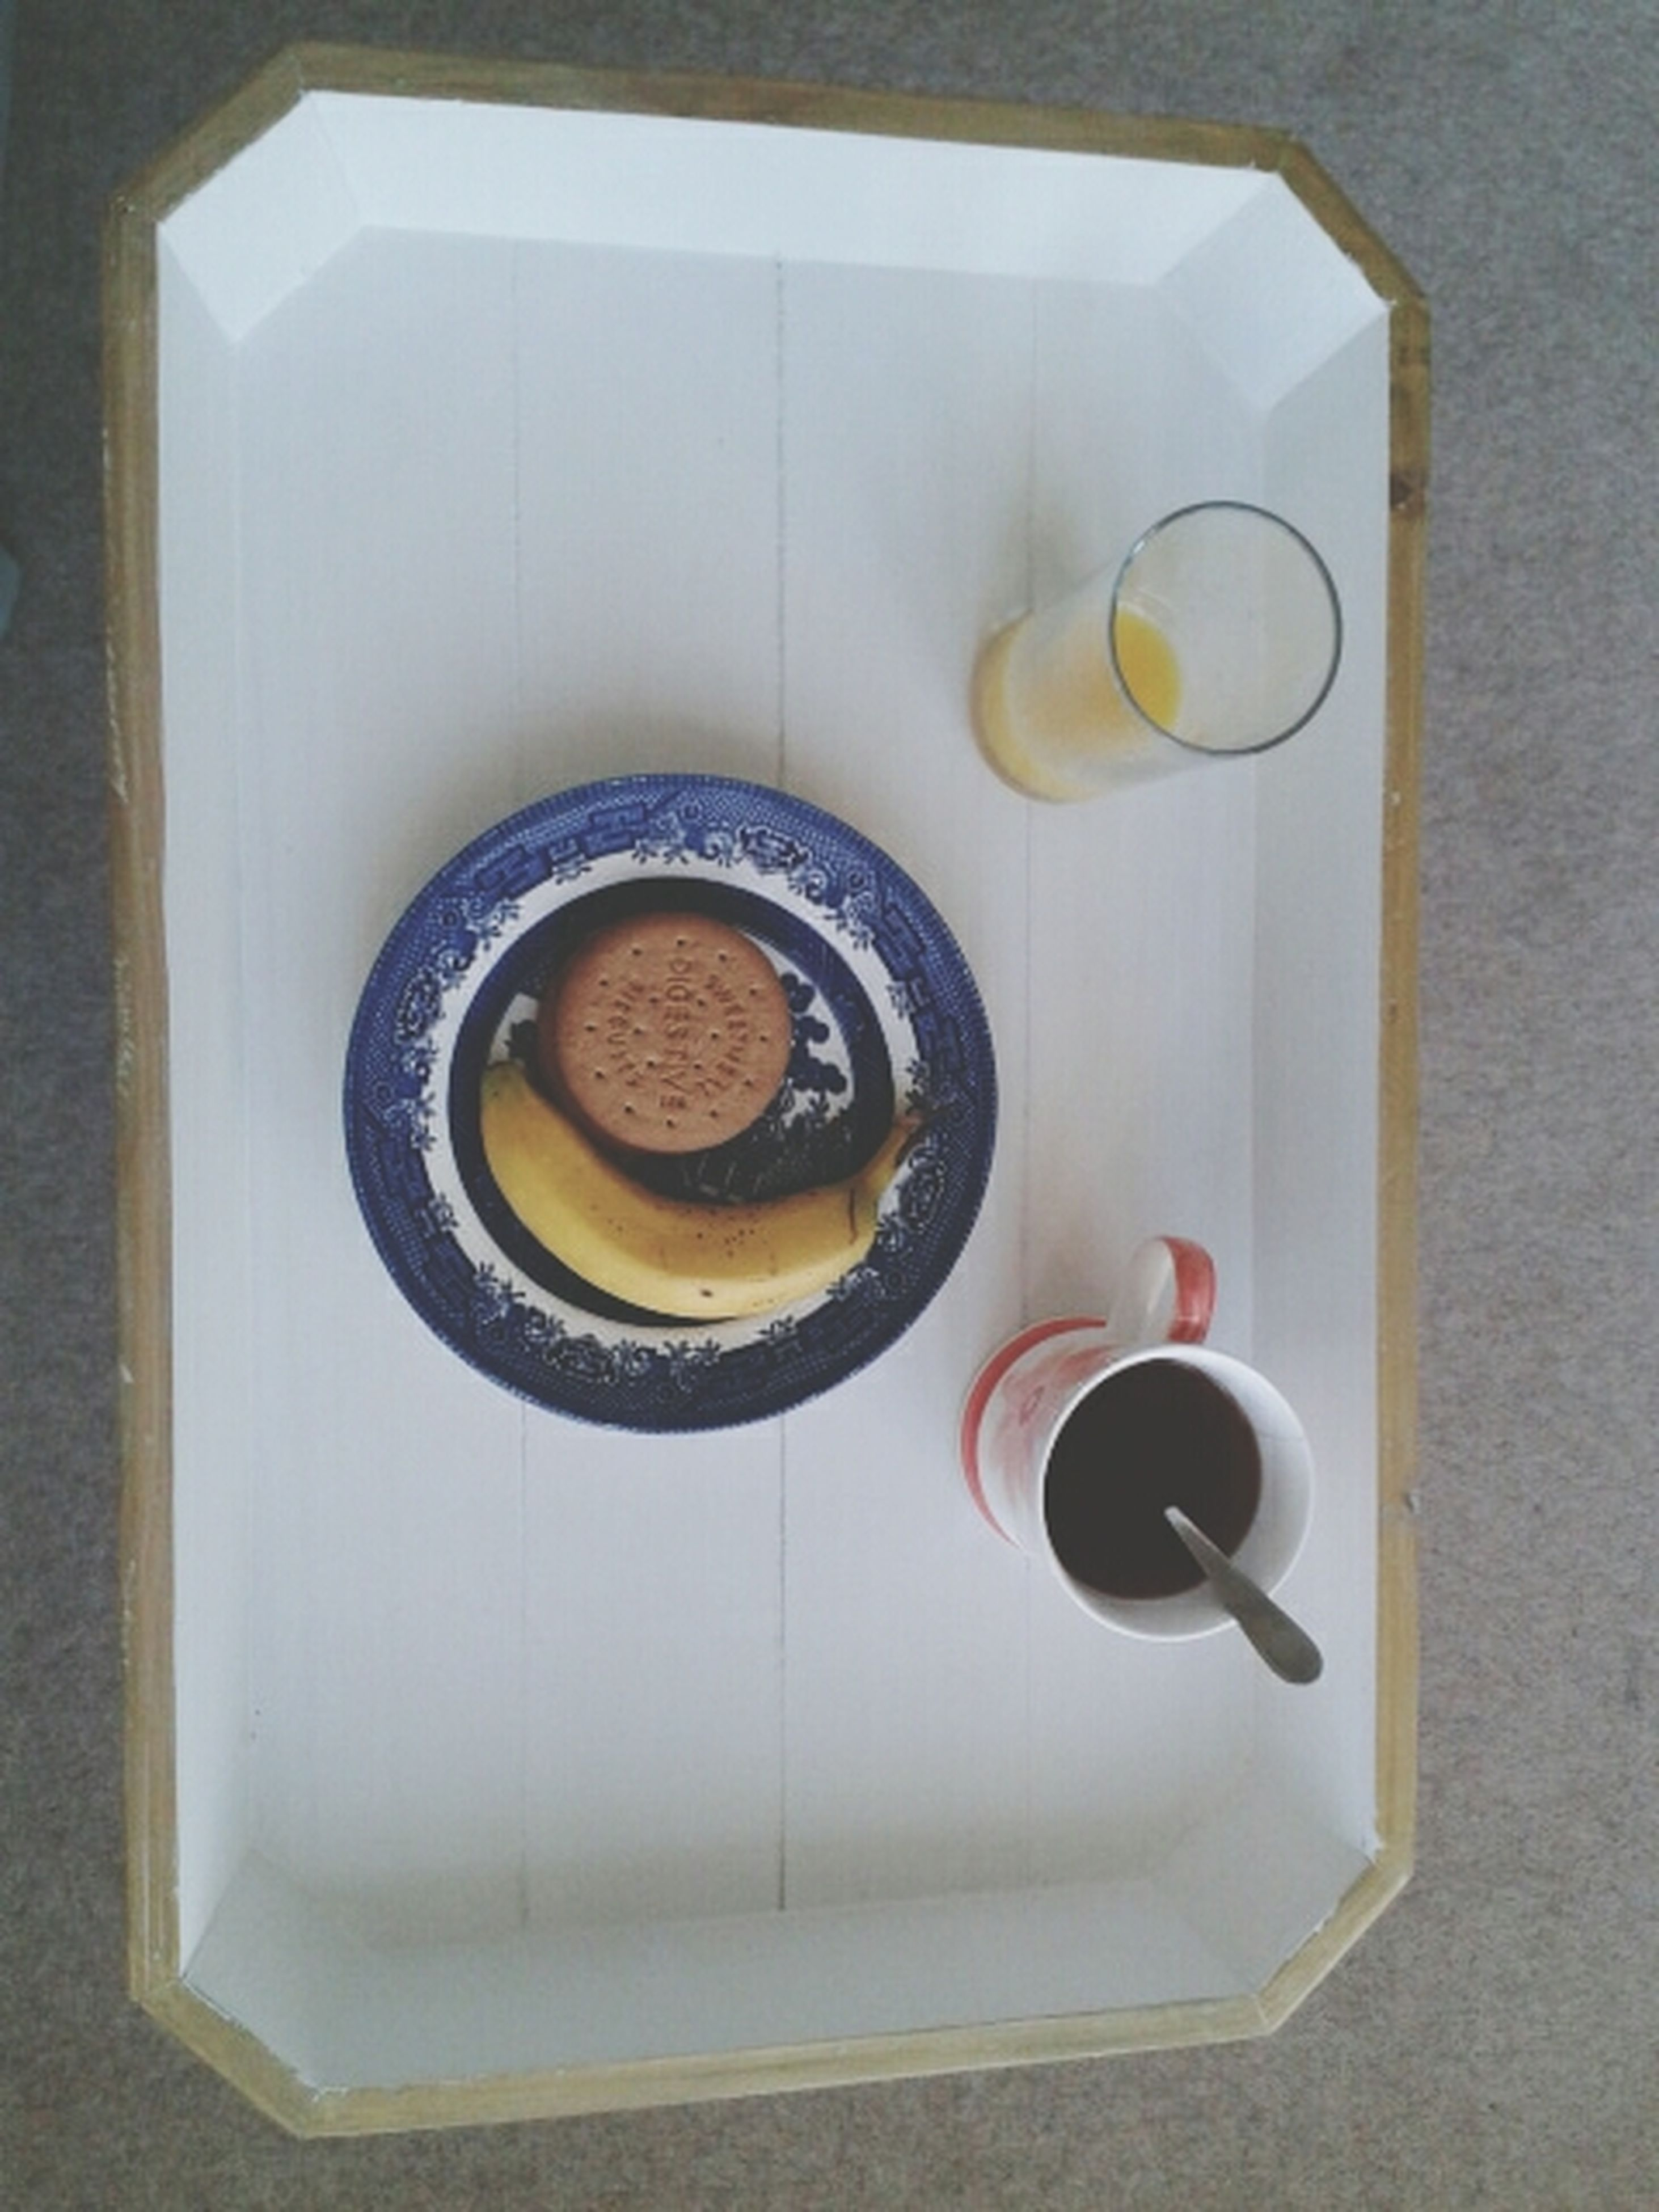 indoors, food and drink, table, still life, directly above, coffee cup, high angle view, drink, freshness, refreshment, food, coffee - drink, cup, plate, coffee, spoon, saucer, no people, overhead view, circle